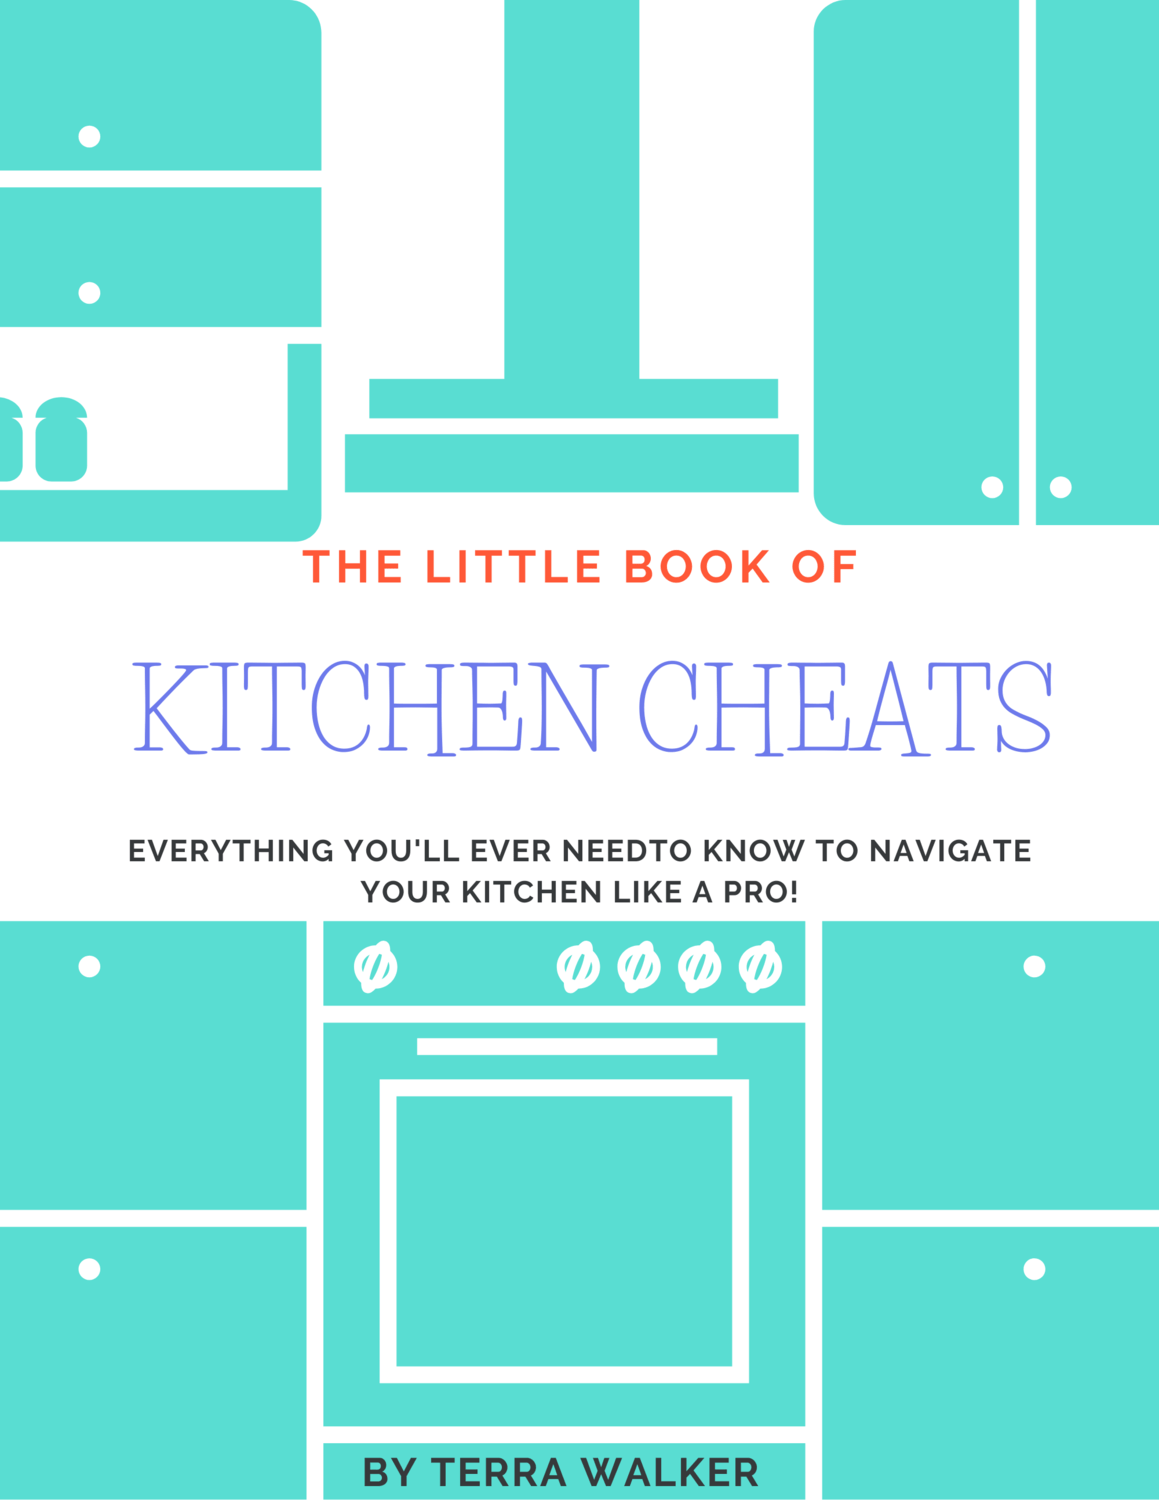 The Little Book of Kitchen Cheats